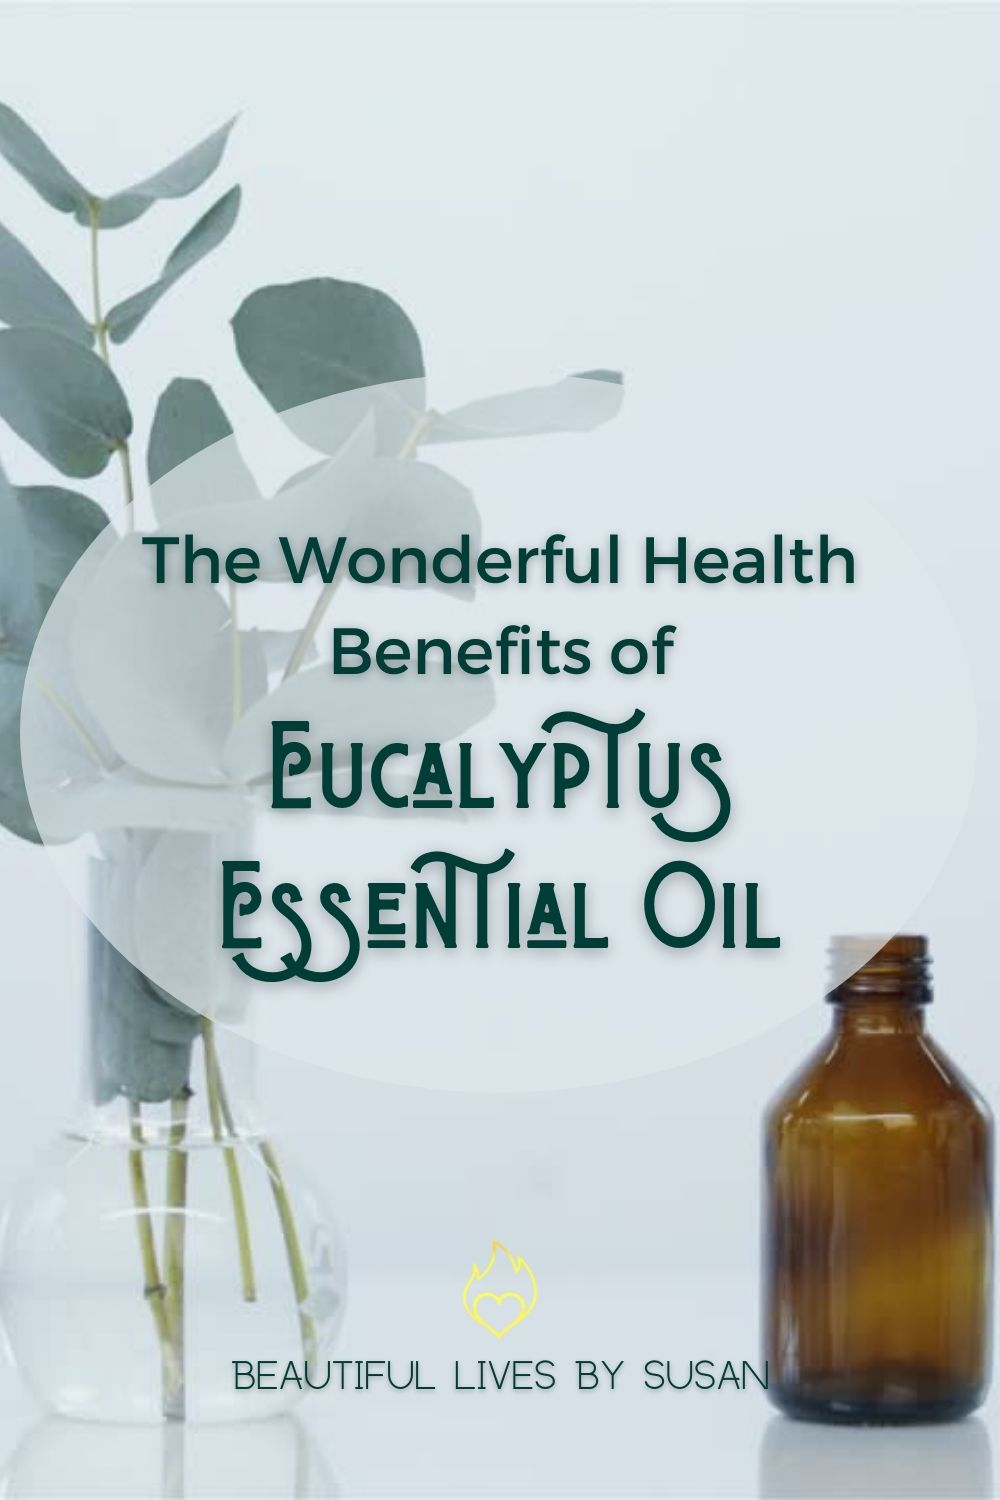 Eucalyptus Essential Oil Benefits and Uses